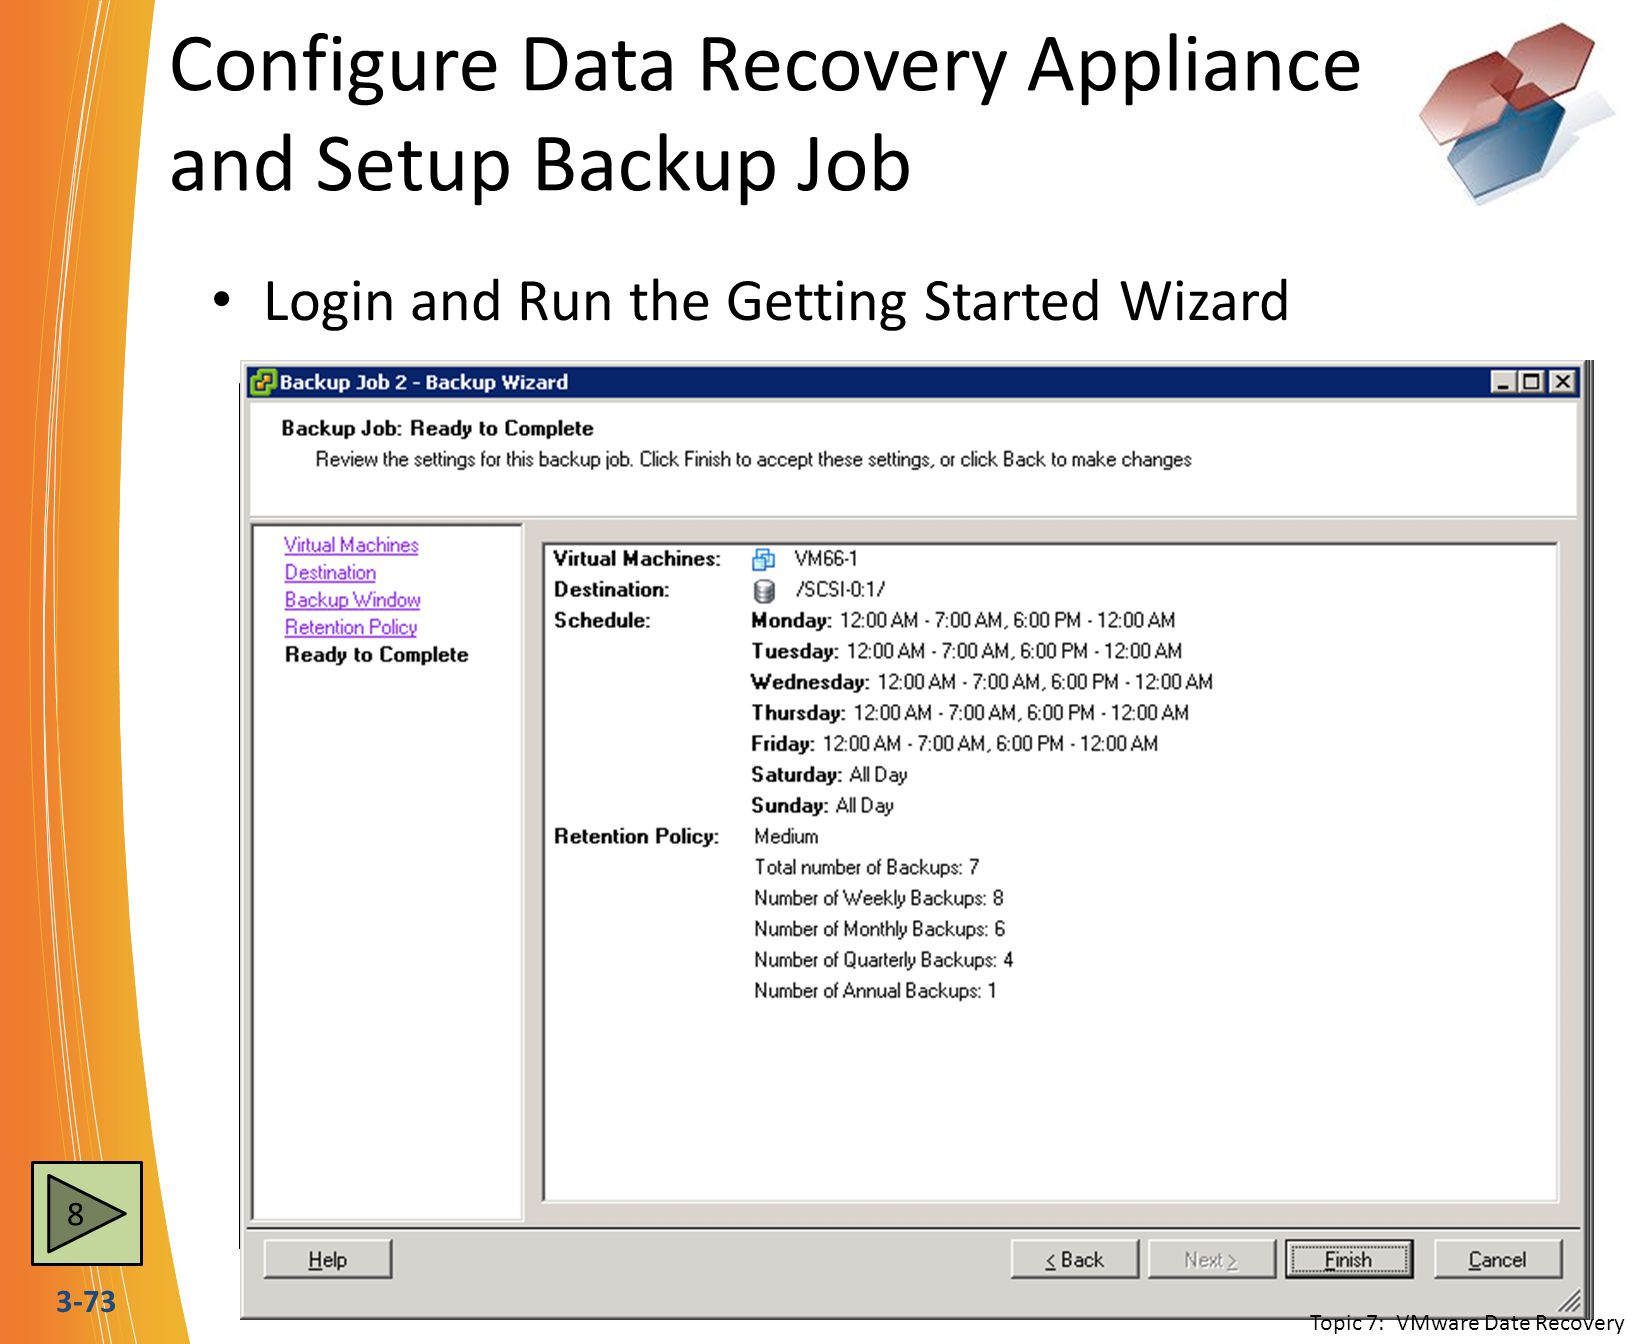 3-73 Configure Data Recovery Appliance and Setup Backup Job Login and Run the Getting Started Wizard Backups will occur once per day during the Backup